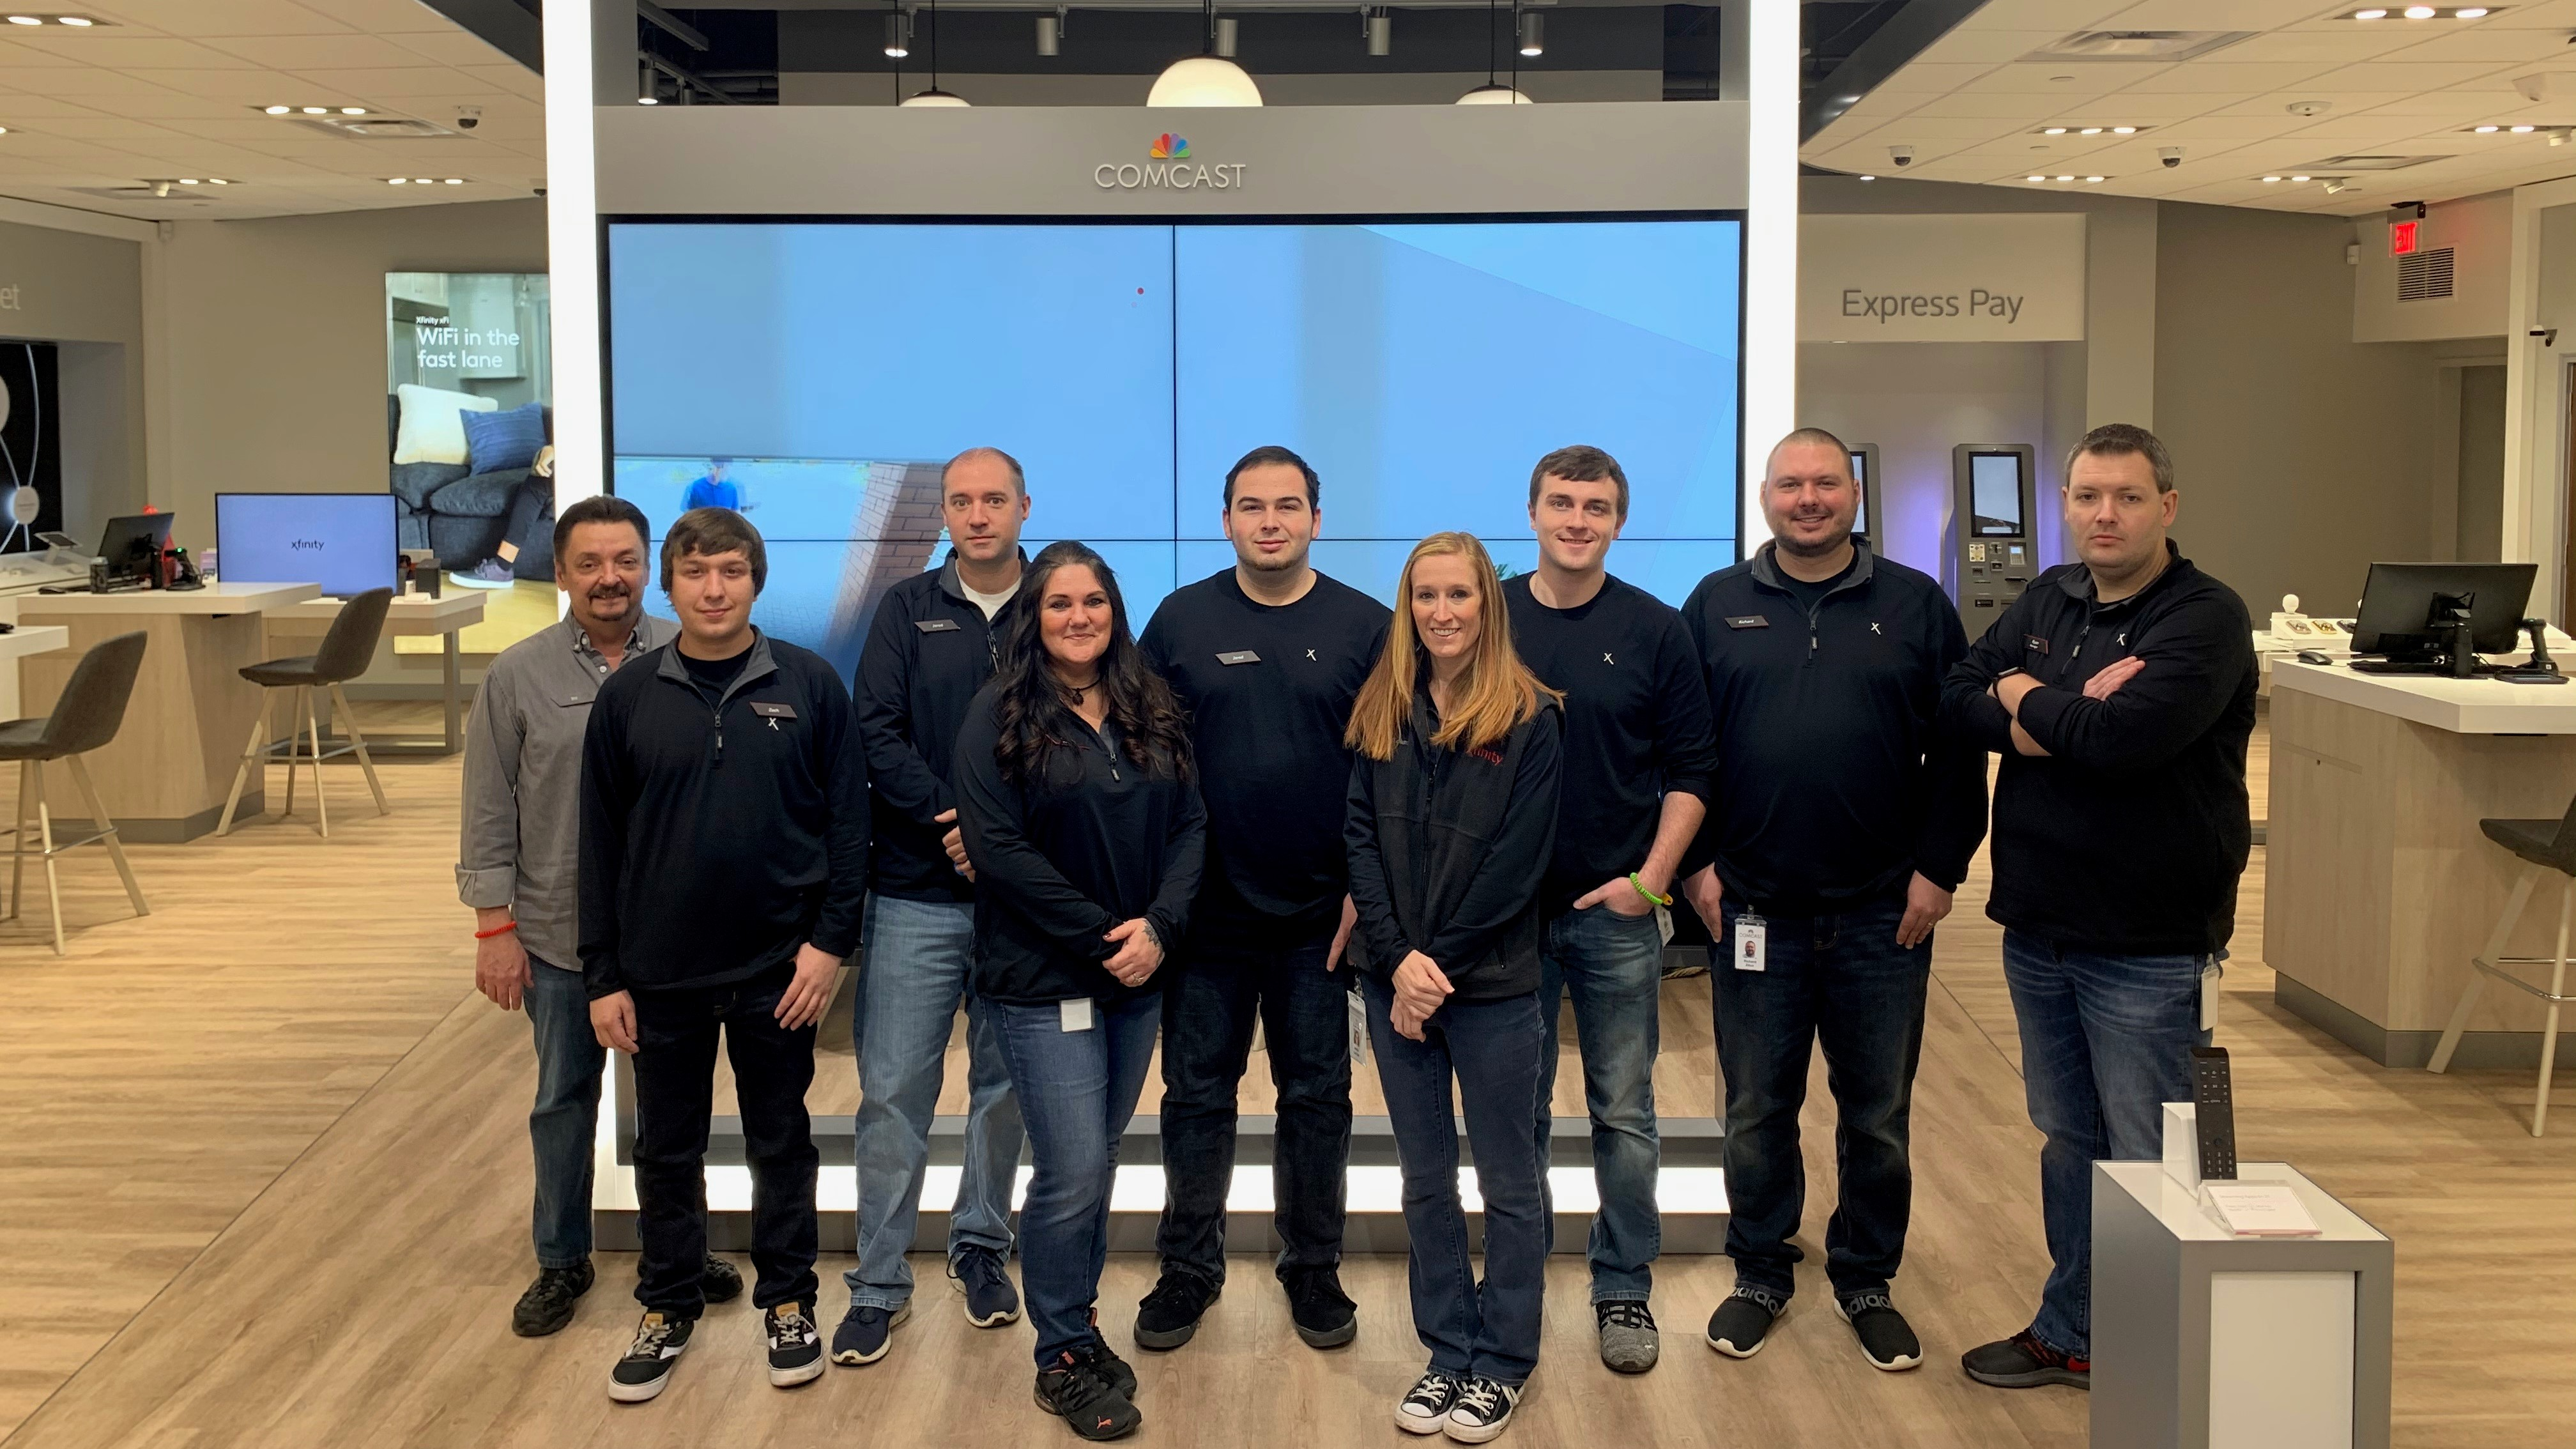 Comcast employees inside new Xfinity store